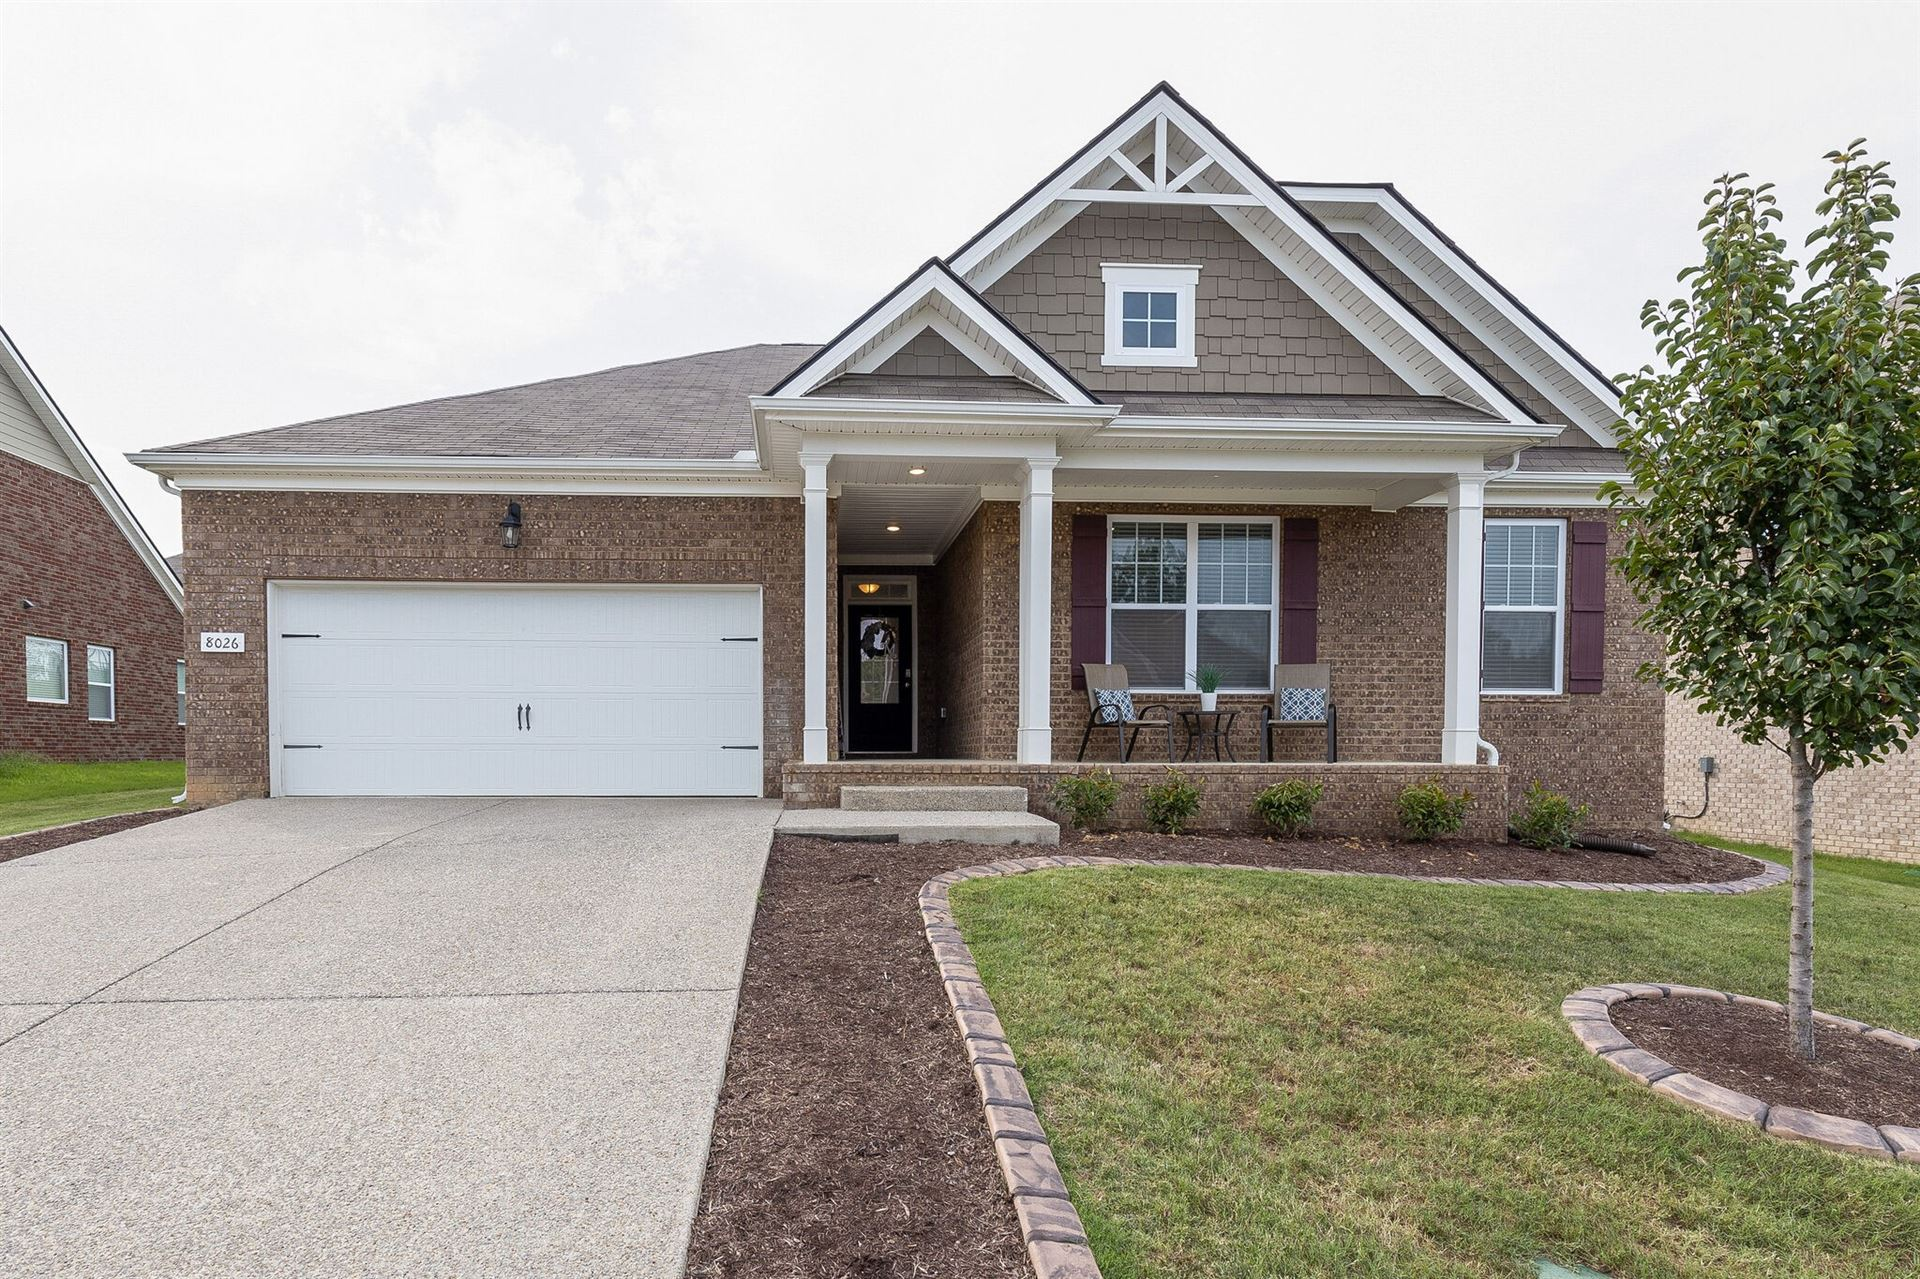 Photo of 8026 Forest Hills Dr, Spring Hill, TN 37174 (MLS # 2276807)